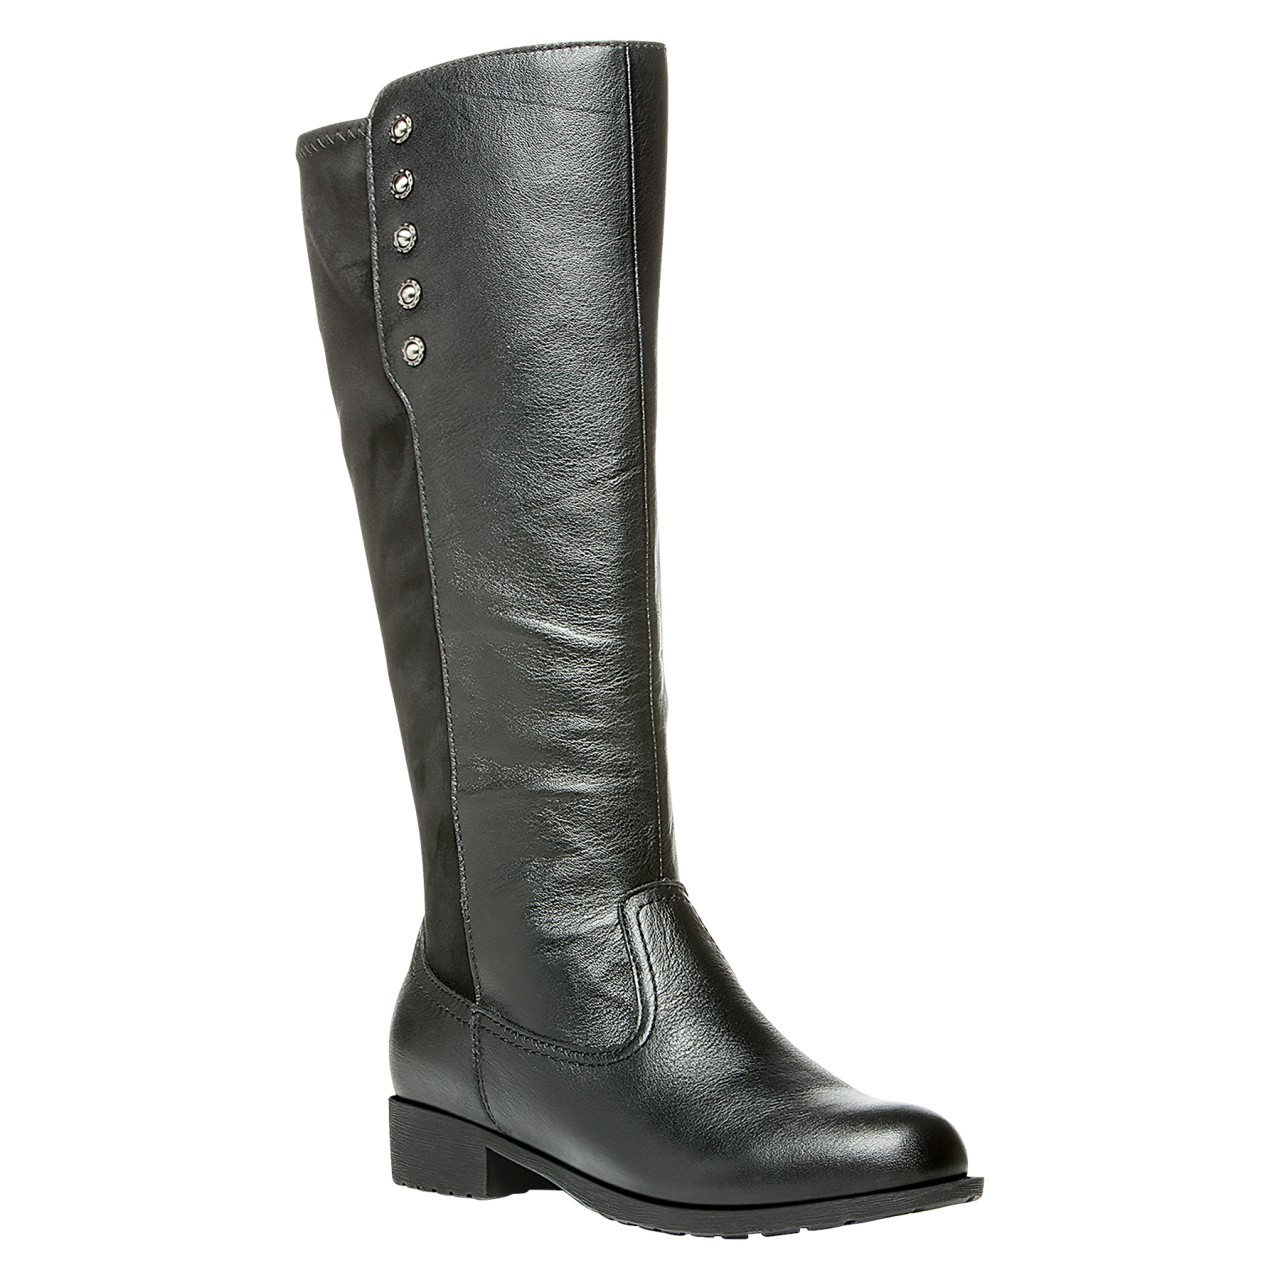 Propet Charlotte Boots Women's Mainstreet Black Black Suede by